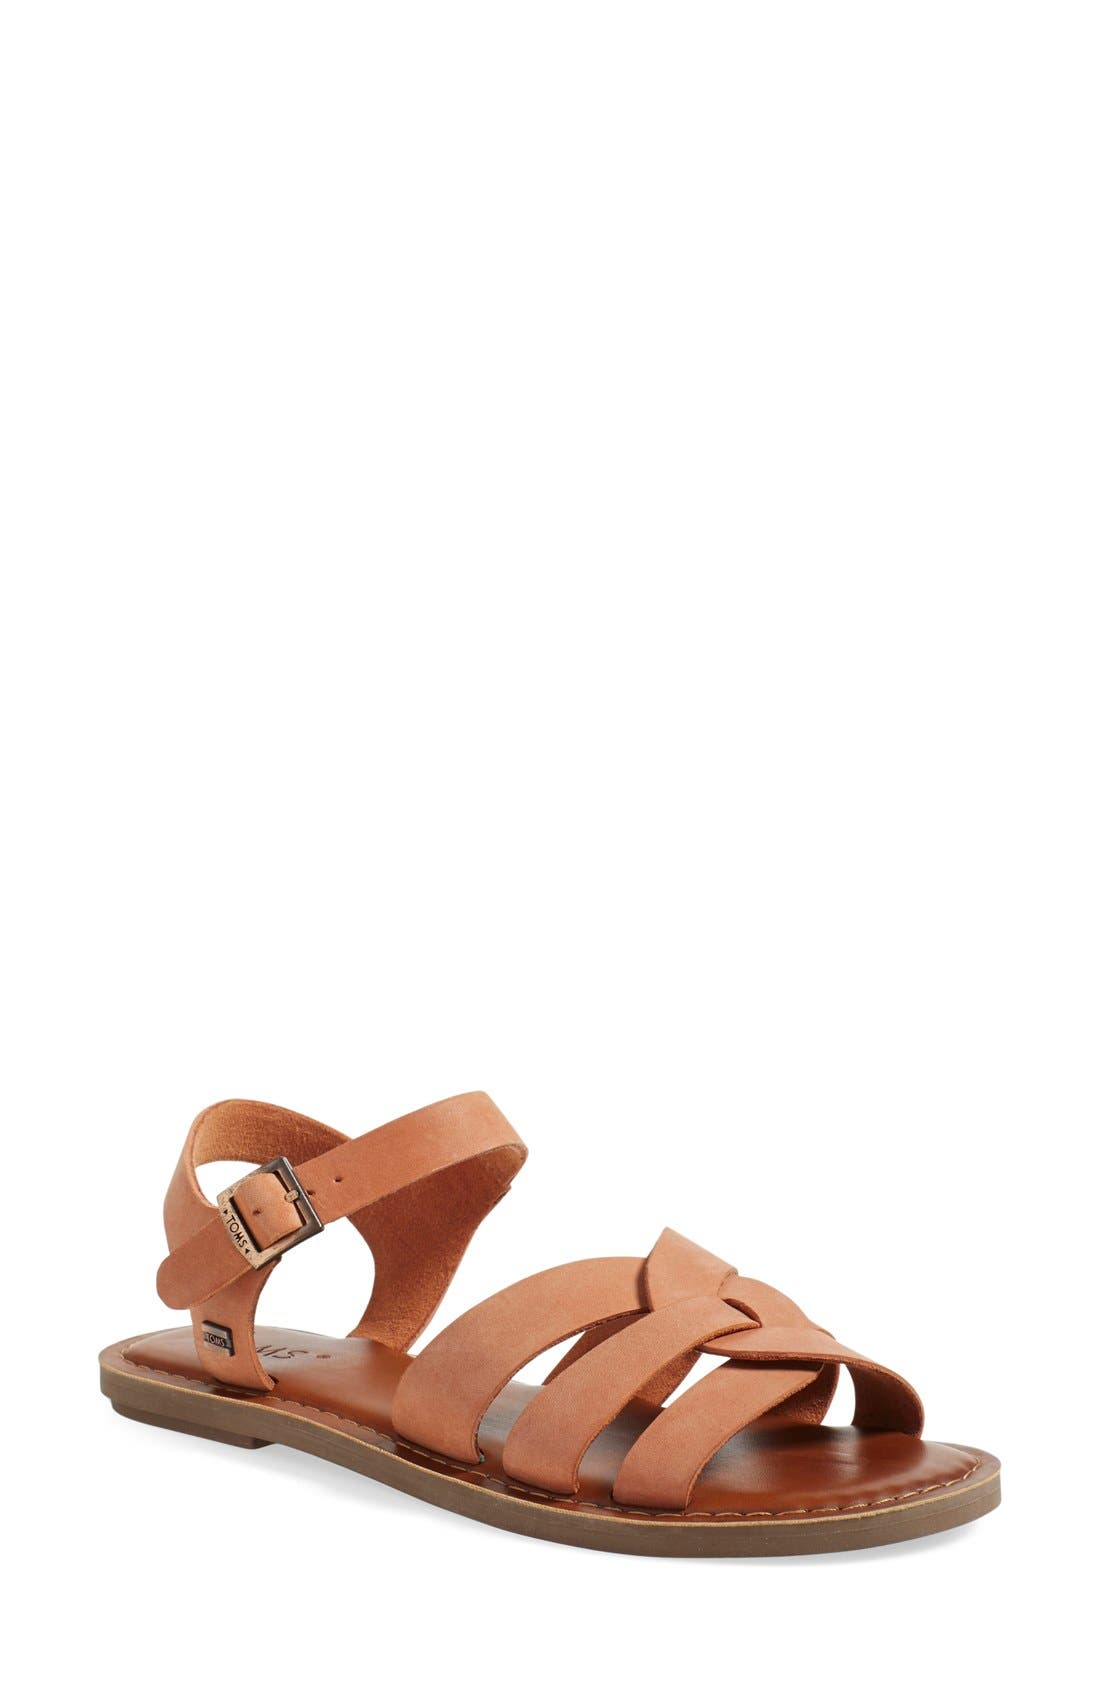 Alternate Image 1 Selected - TOMS 'Zoe' Flat Quarter Strap Sandal (Women)